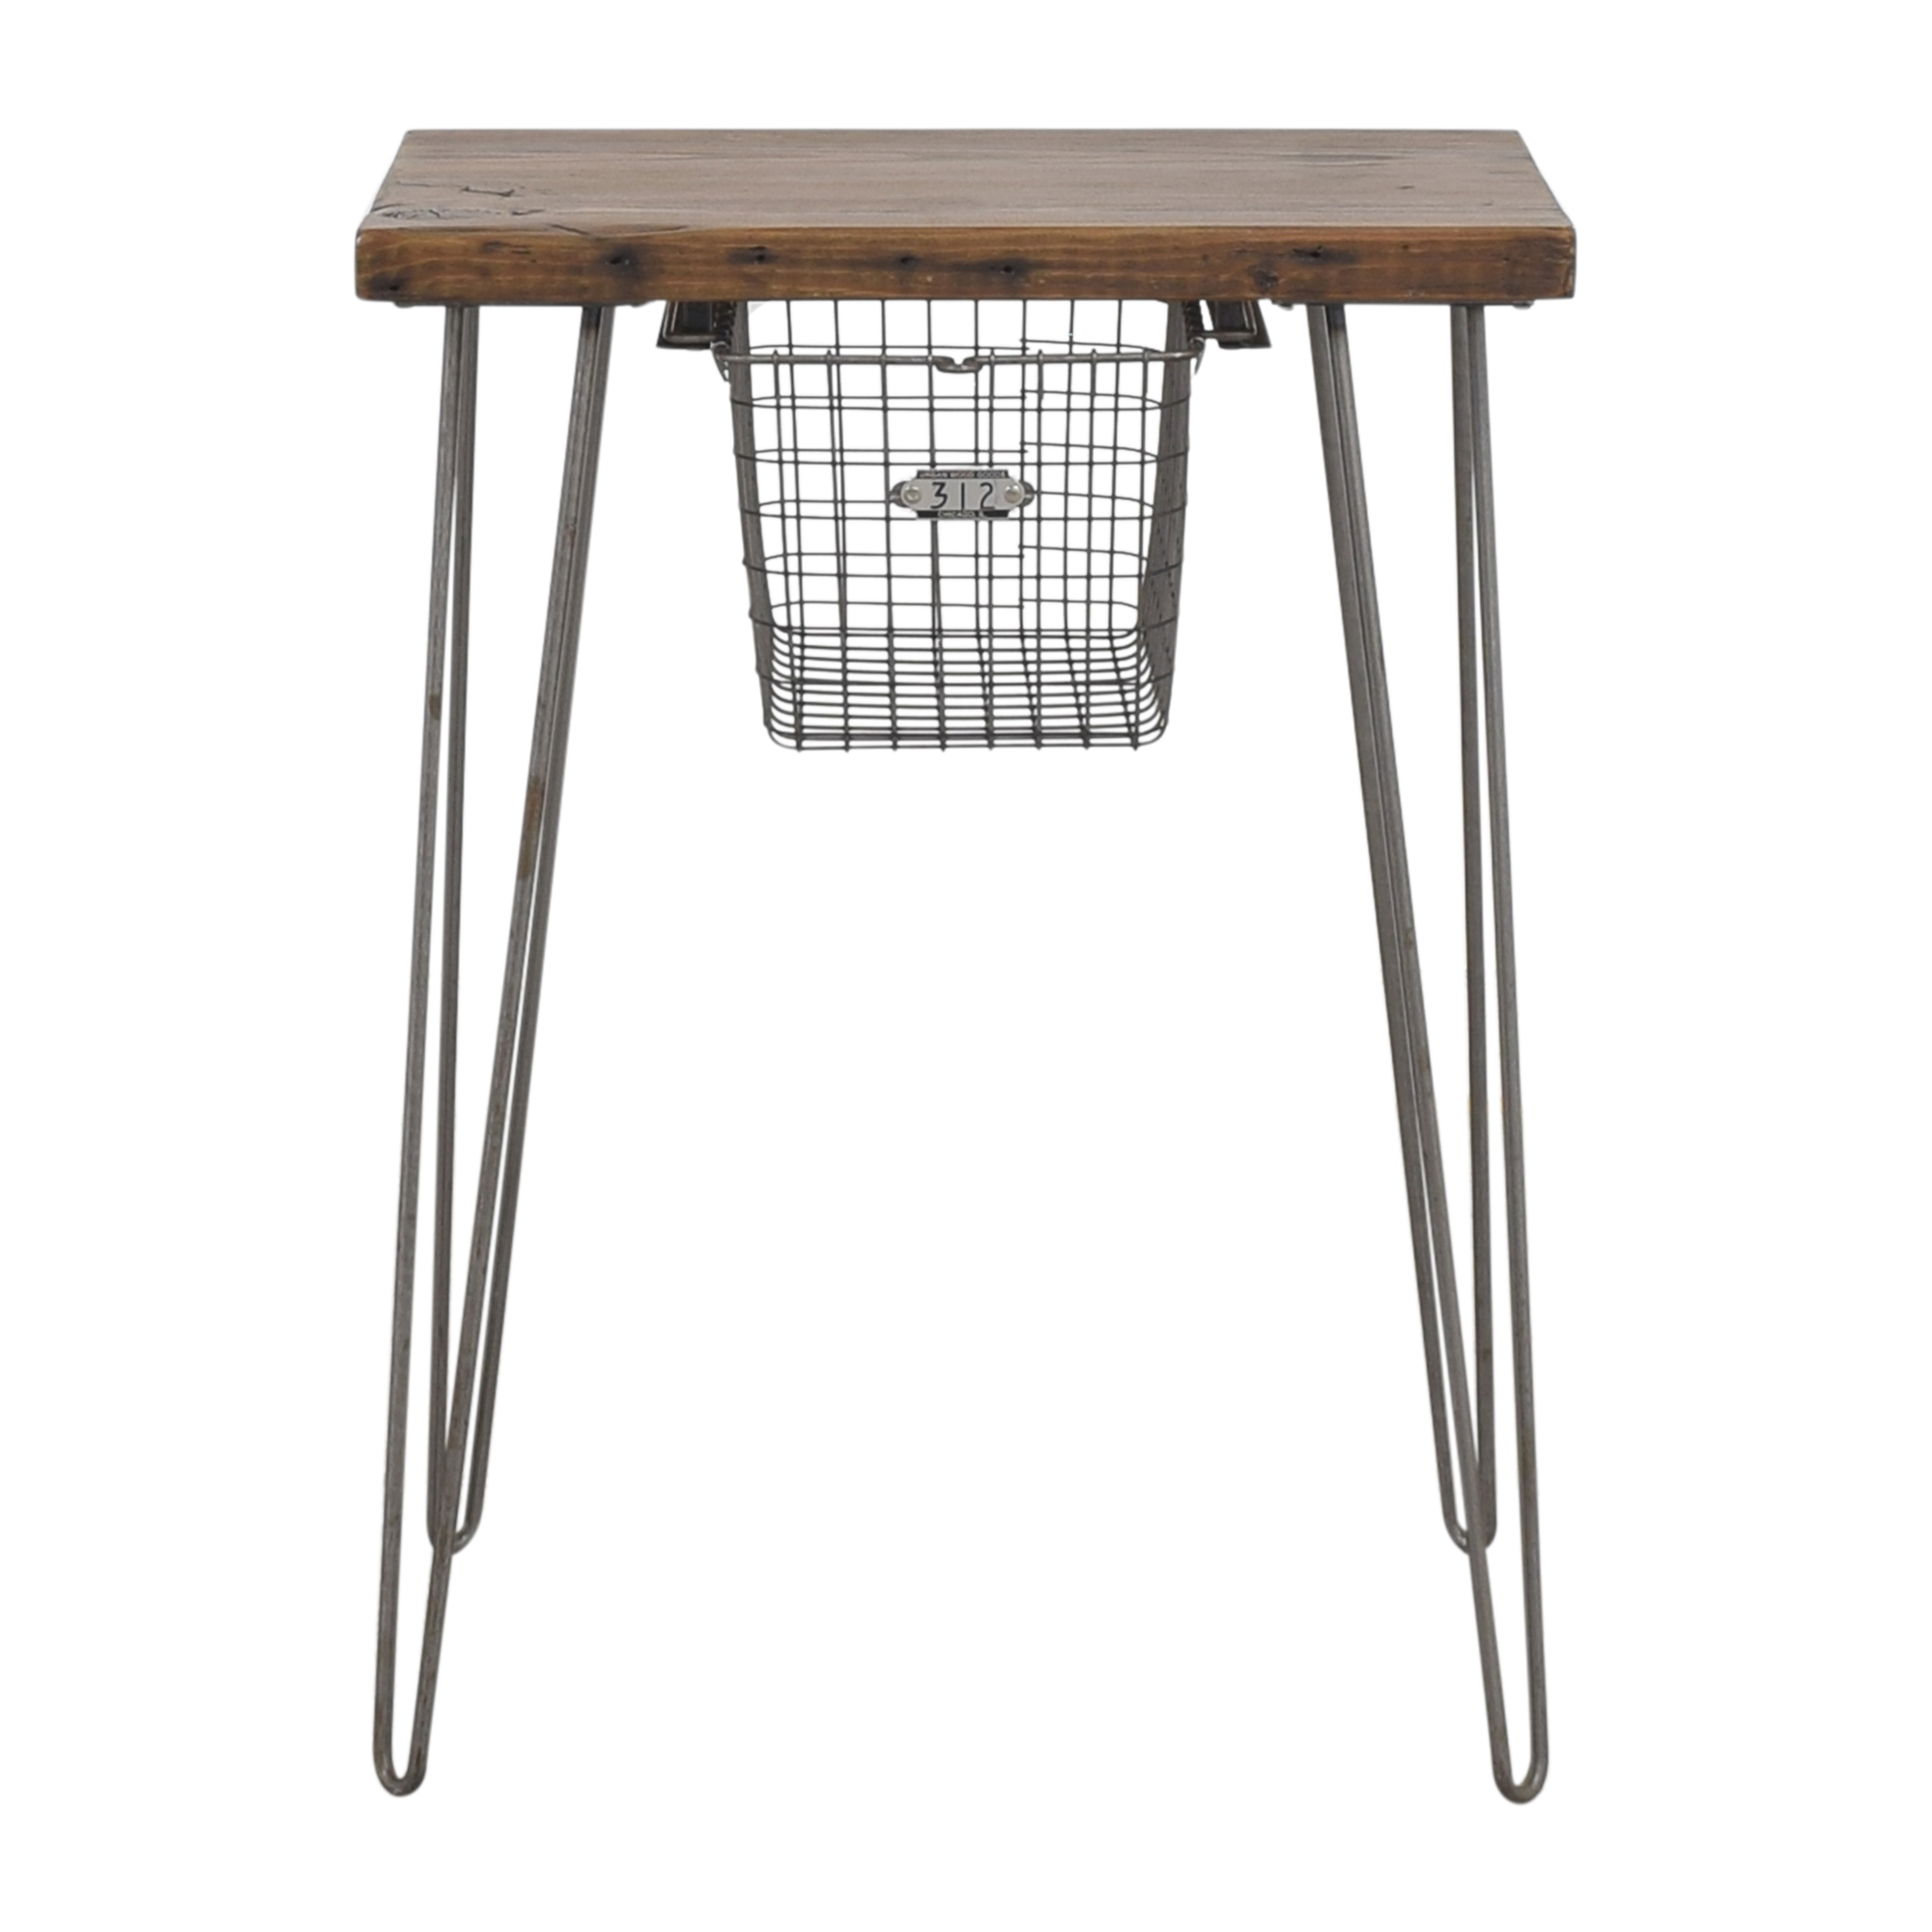 Urban Wood Goods Urban Wood Goods Custom Table with Locker Basket on sale